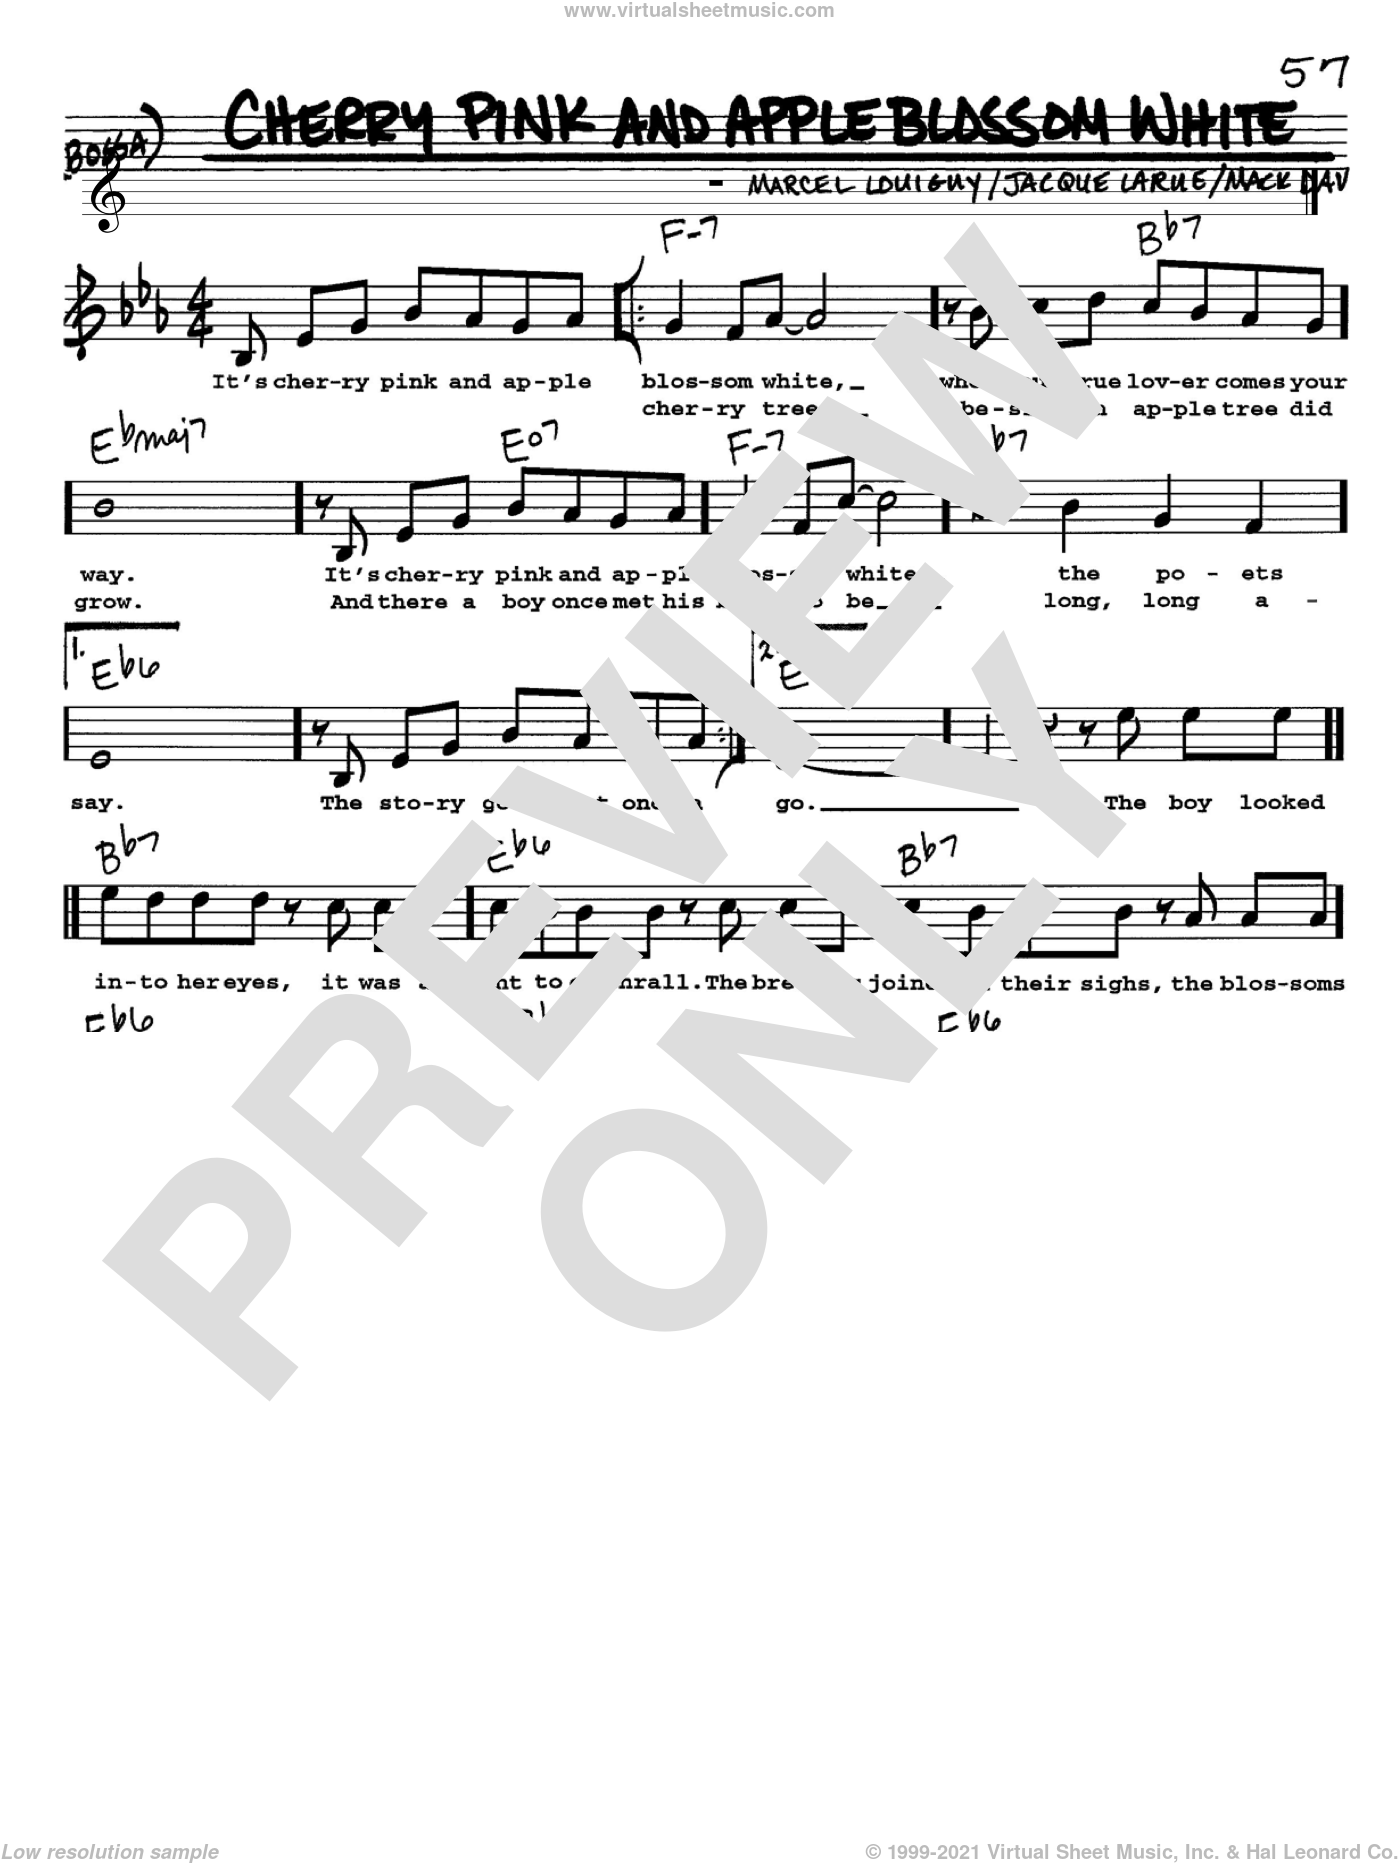 Cherry Pink And Apple Blossom White sheet music for voice and other instruments (Vocal Volume 1) by Mack David and Marcel Louiguy. Score Image Preview.